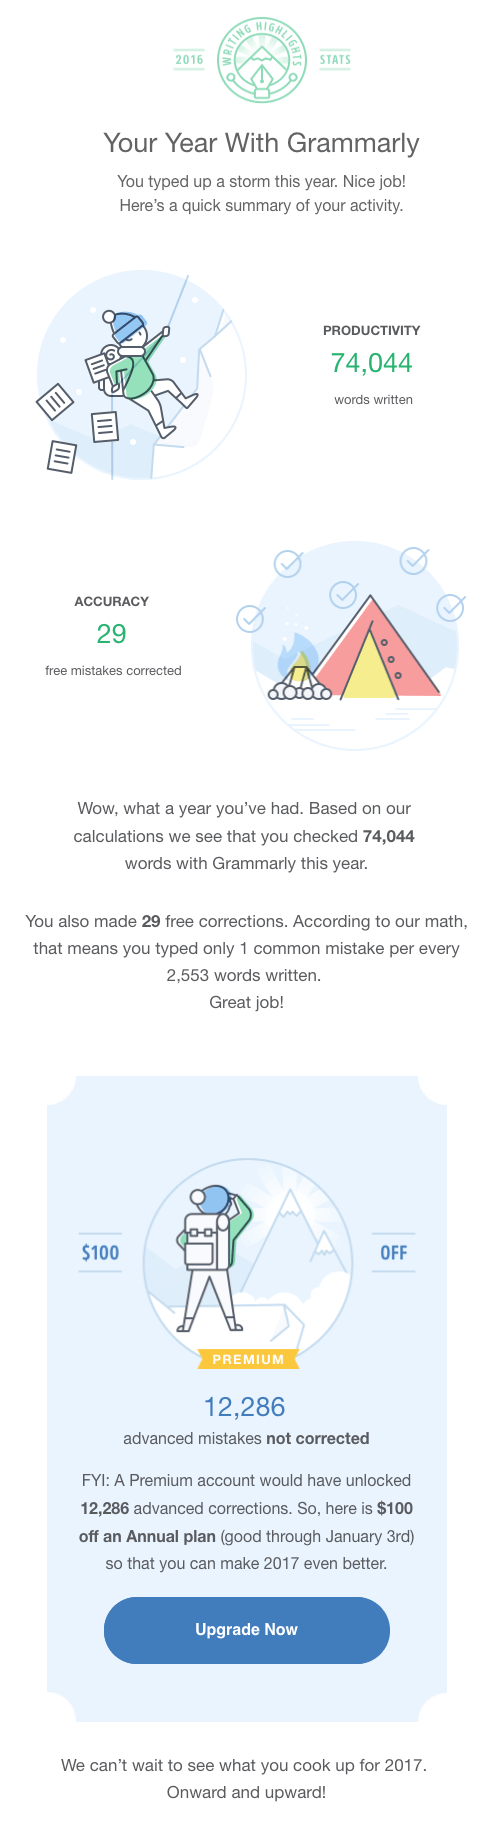 Grammarly- Personalized Email Example